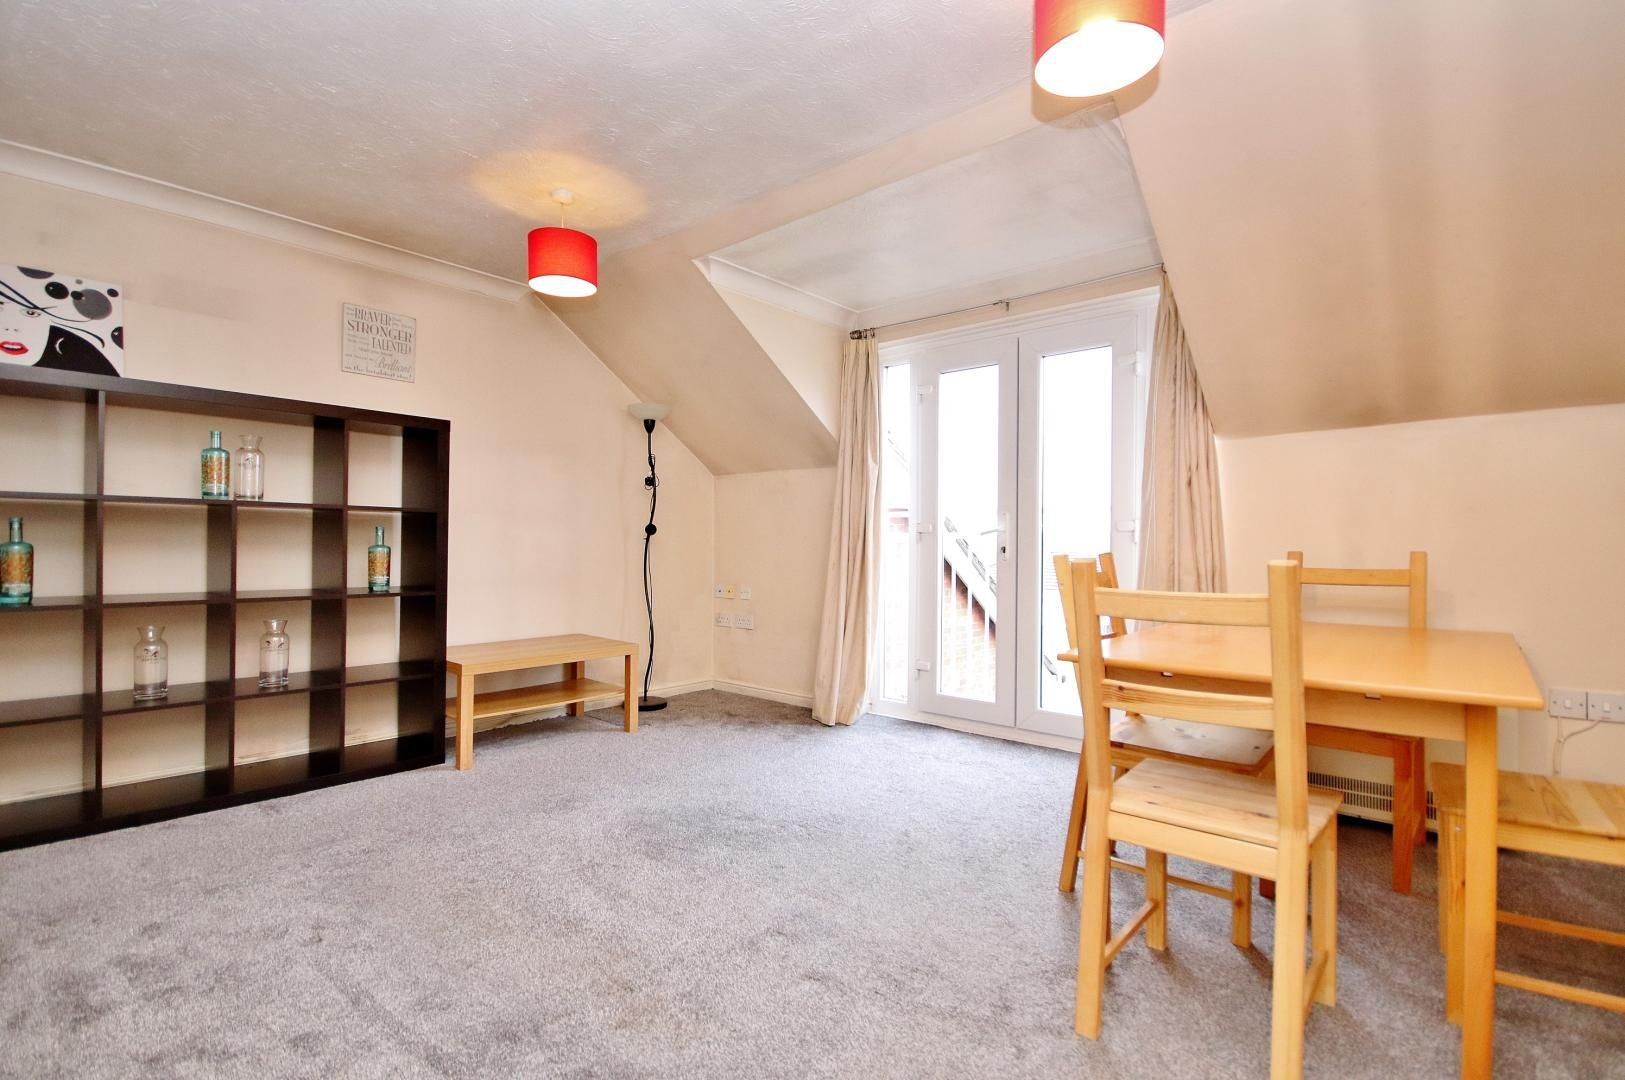 1 bed flat for sale in Ridley Close - Property Image 1